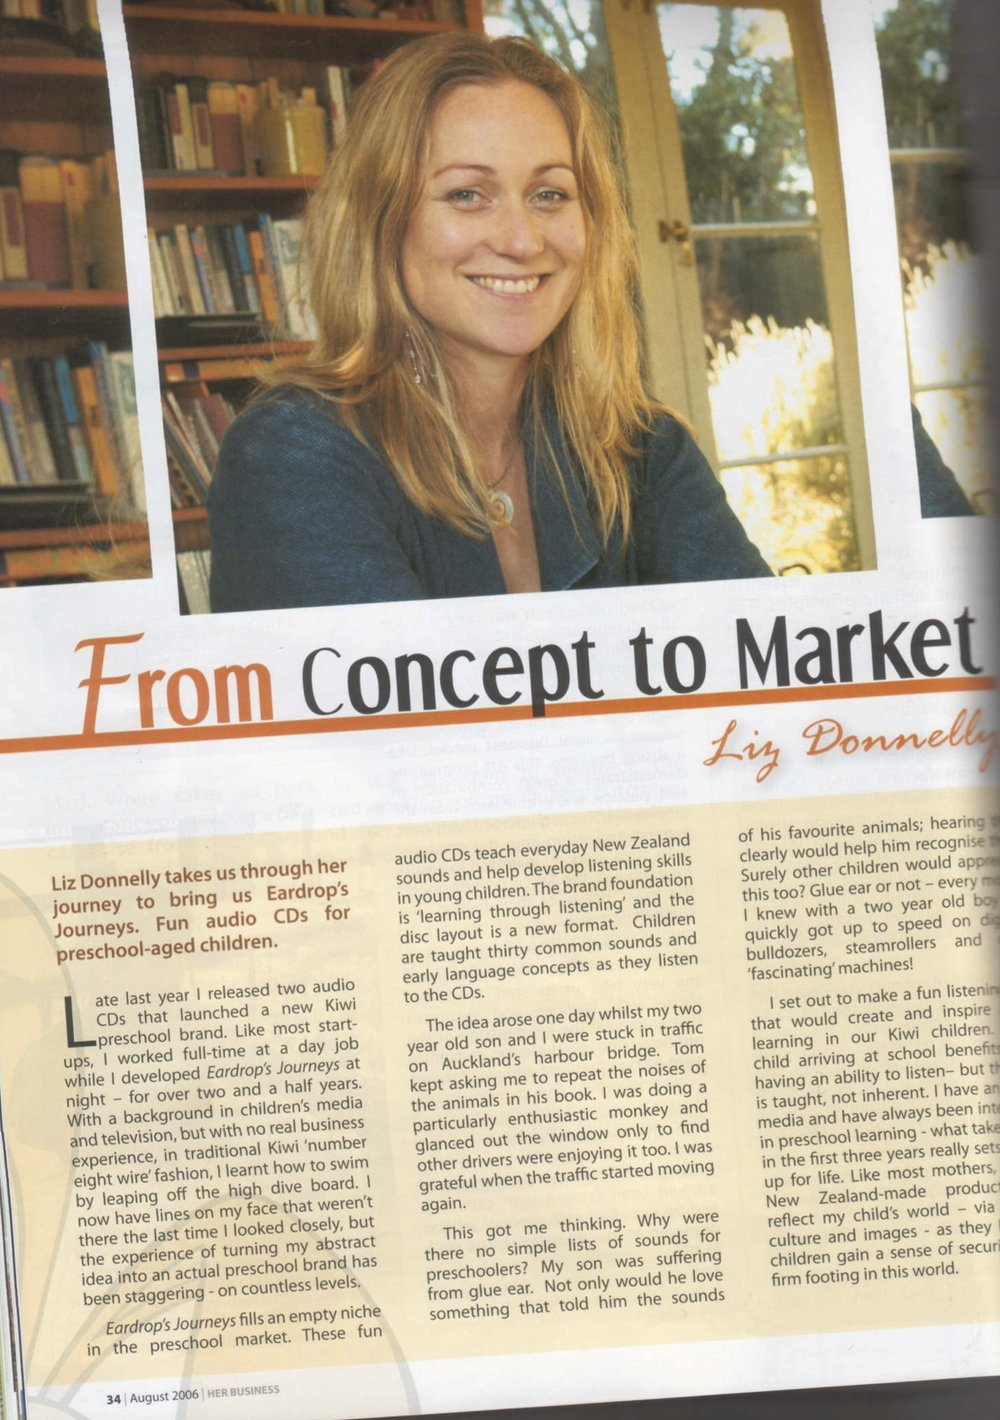 Liz Donnelly profile in Her Business magazine